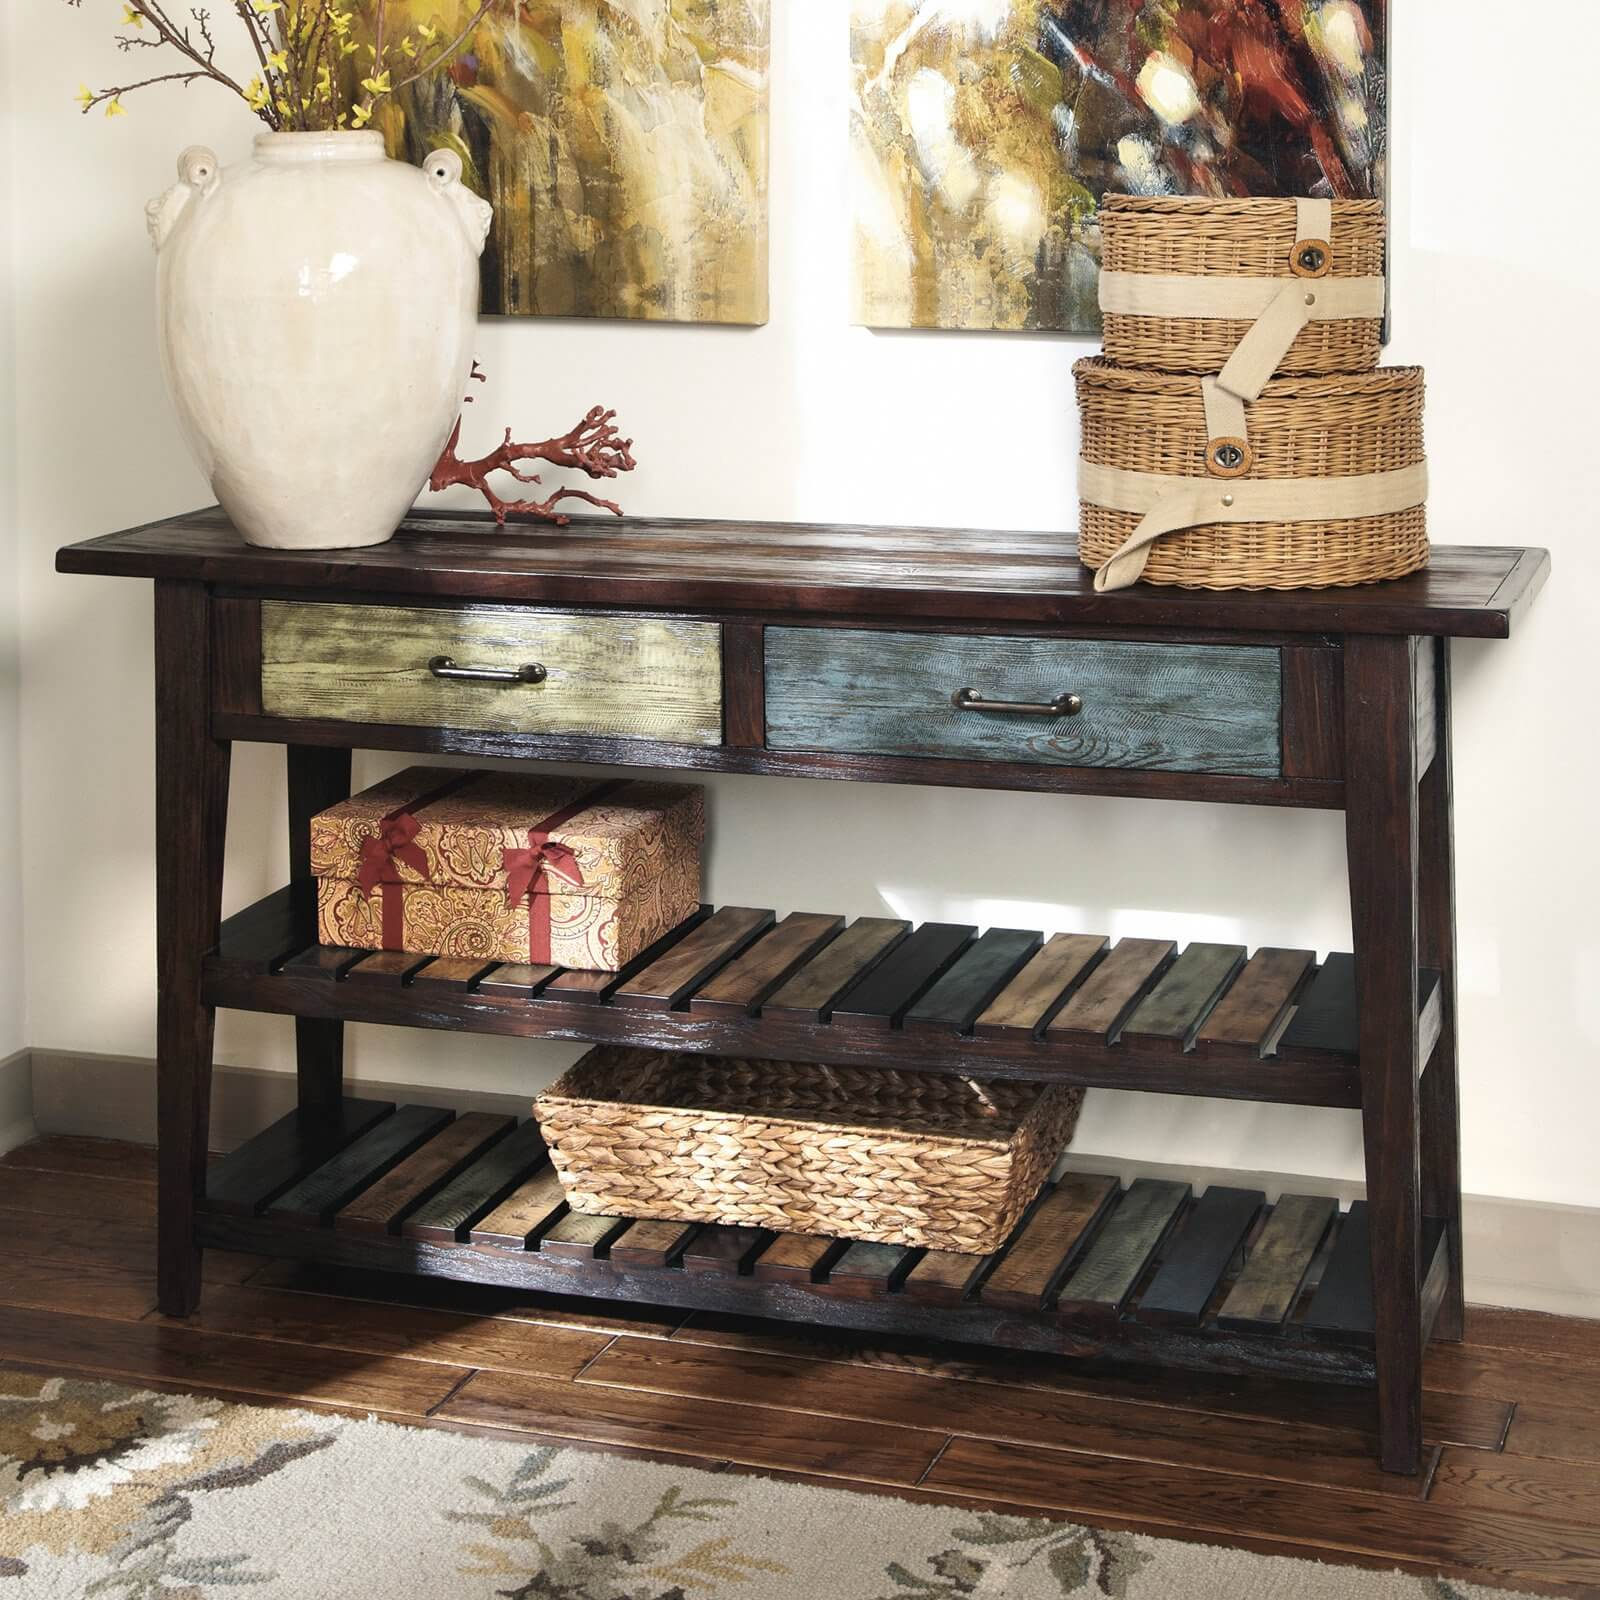 The drawers of this lightly distressed table are painted light green and light blue, contrasting with the dark, natural wood of the rest of the table. The two lower shelves are covered in multi-colored slats.